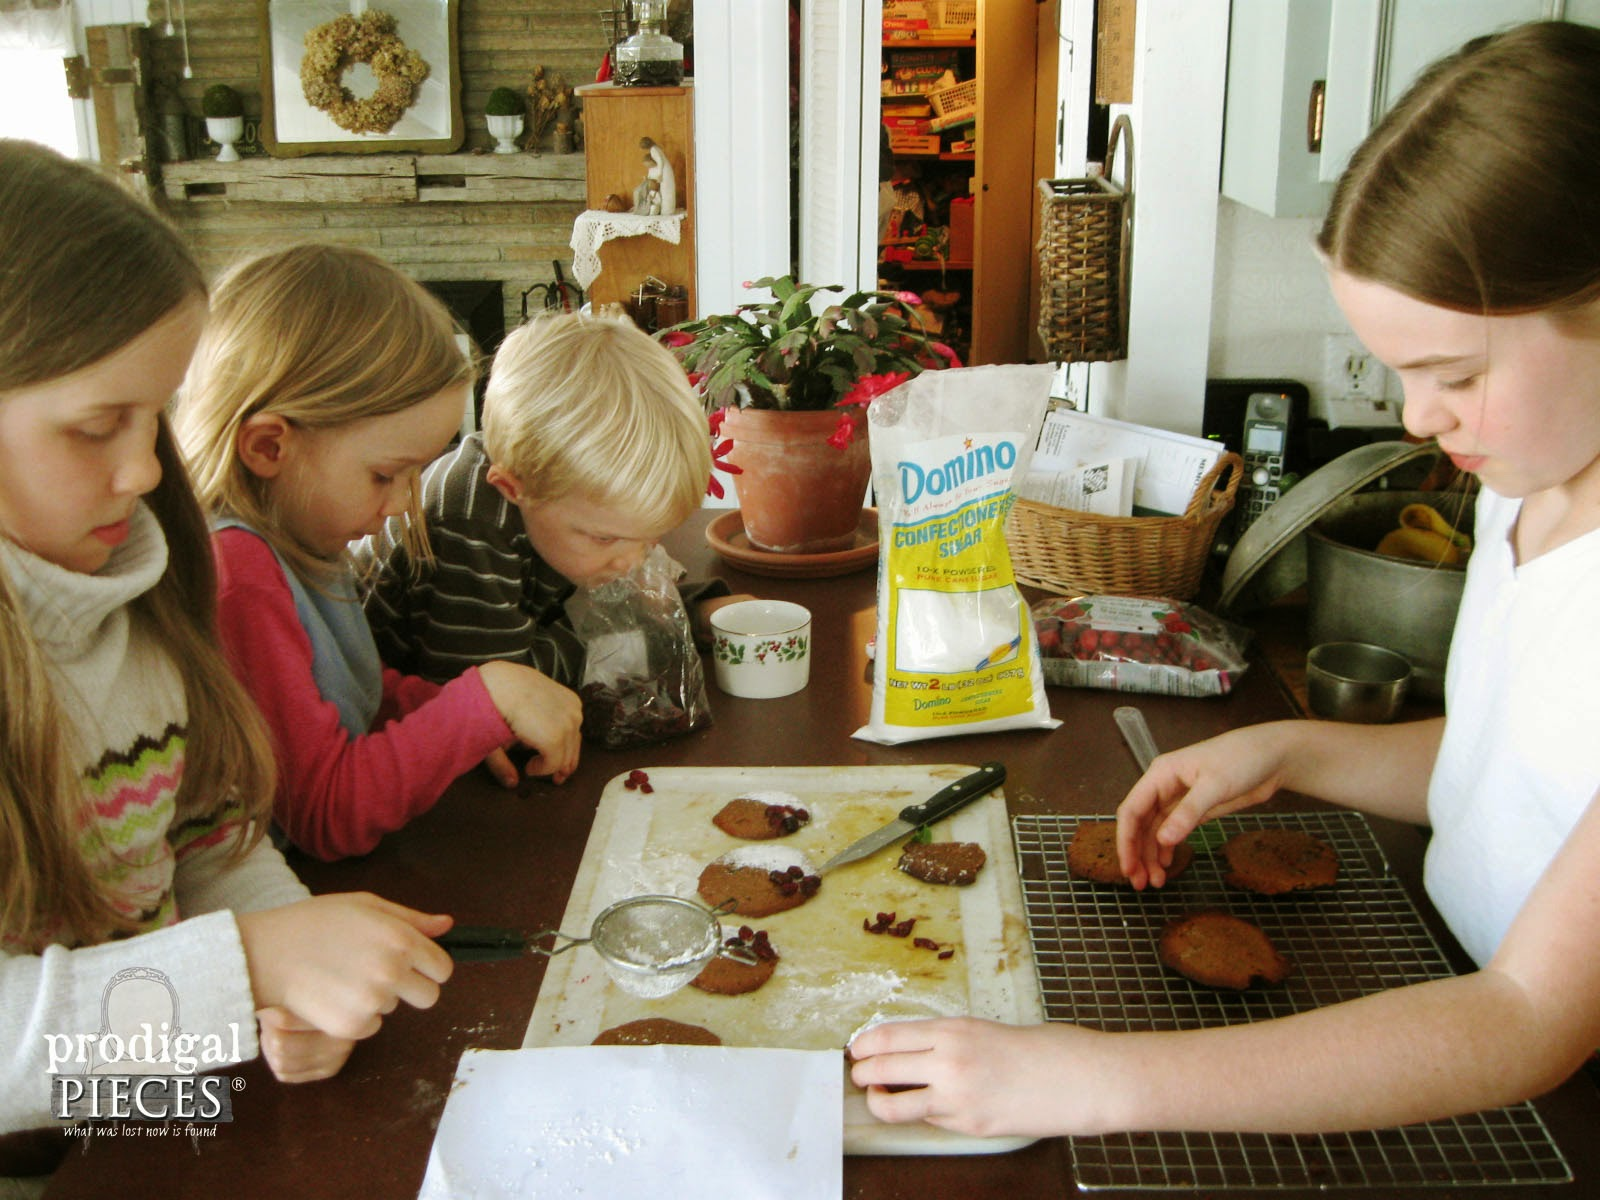 Kids Helping Decorate Cookies | prodigalpieces.com